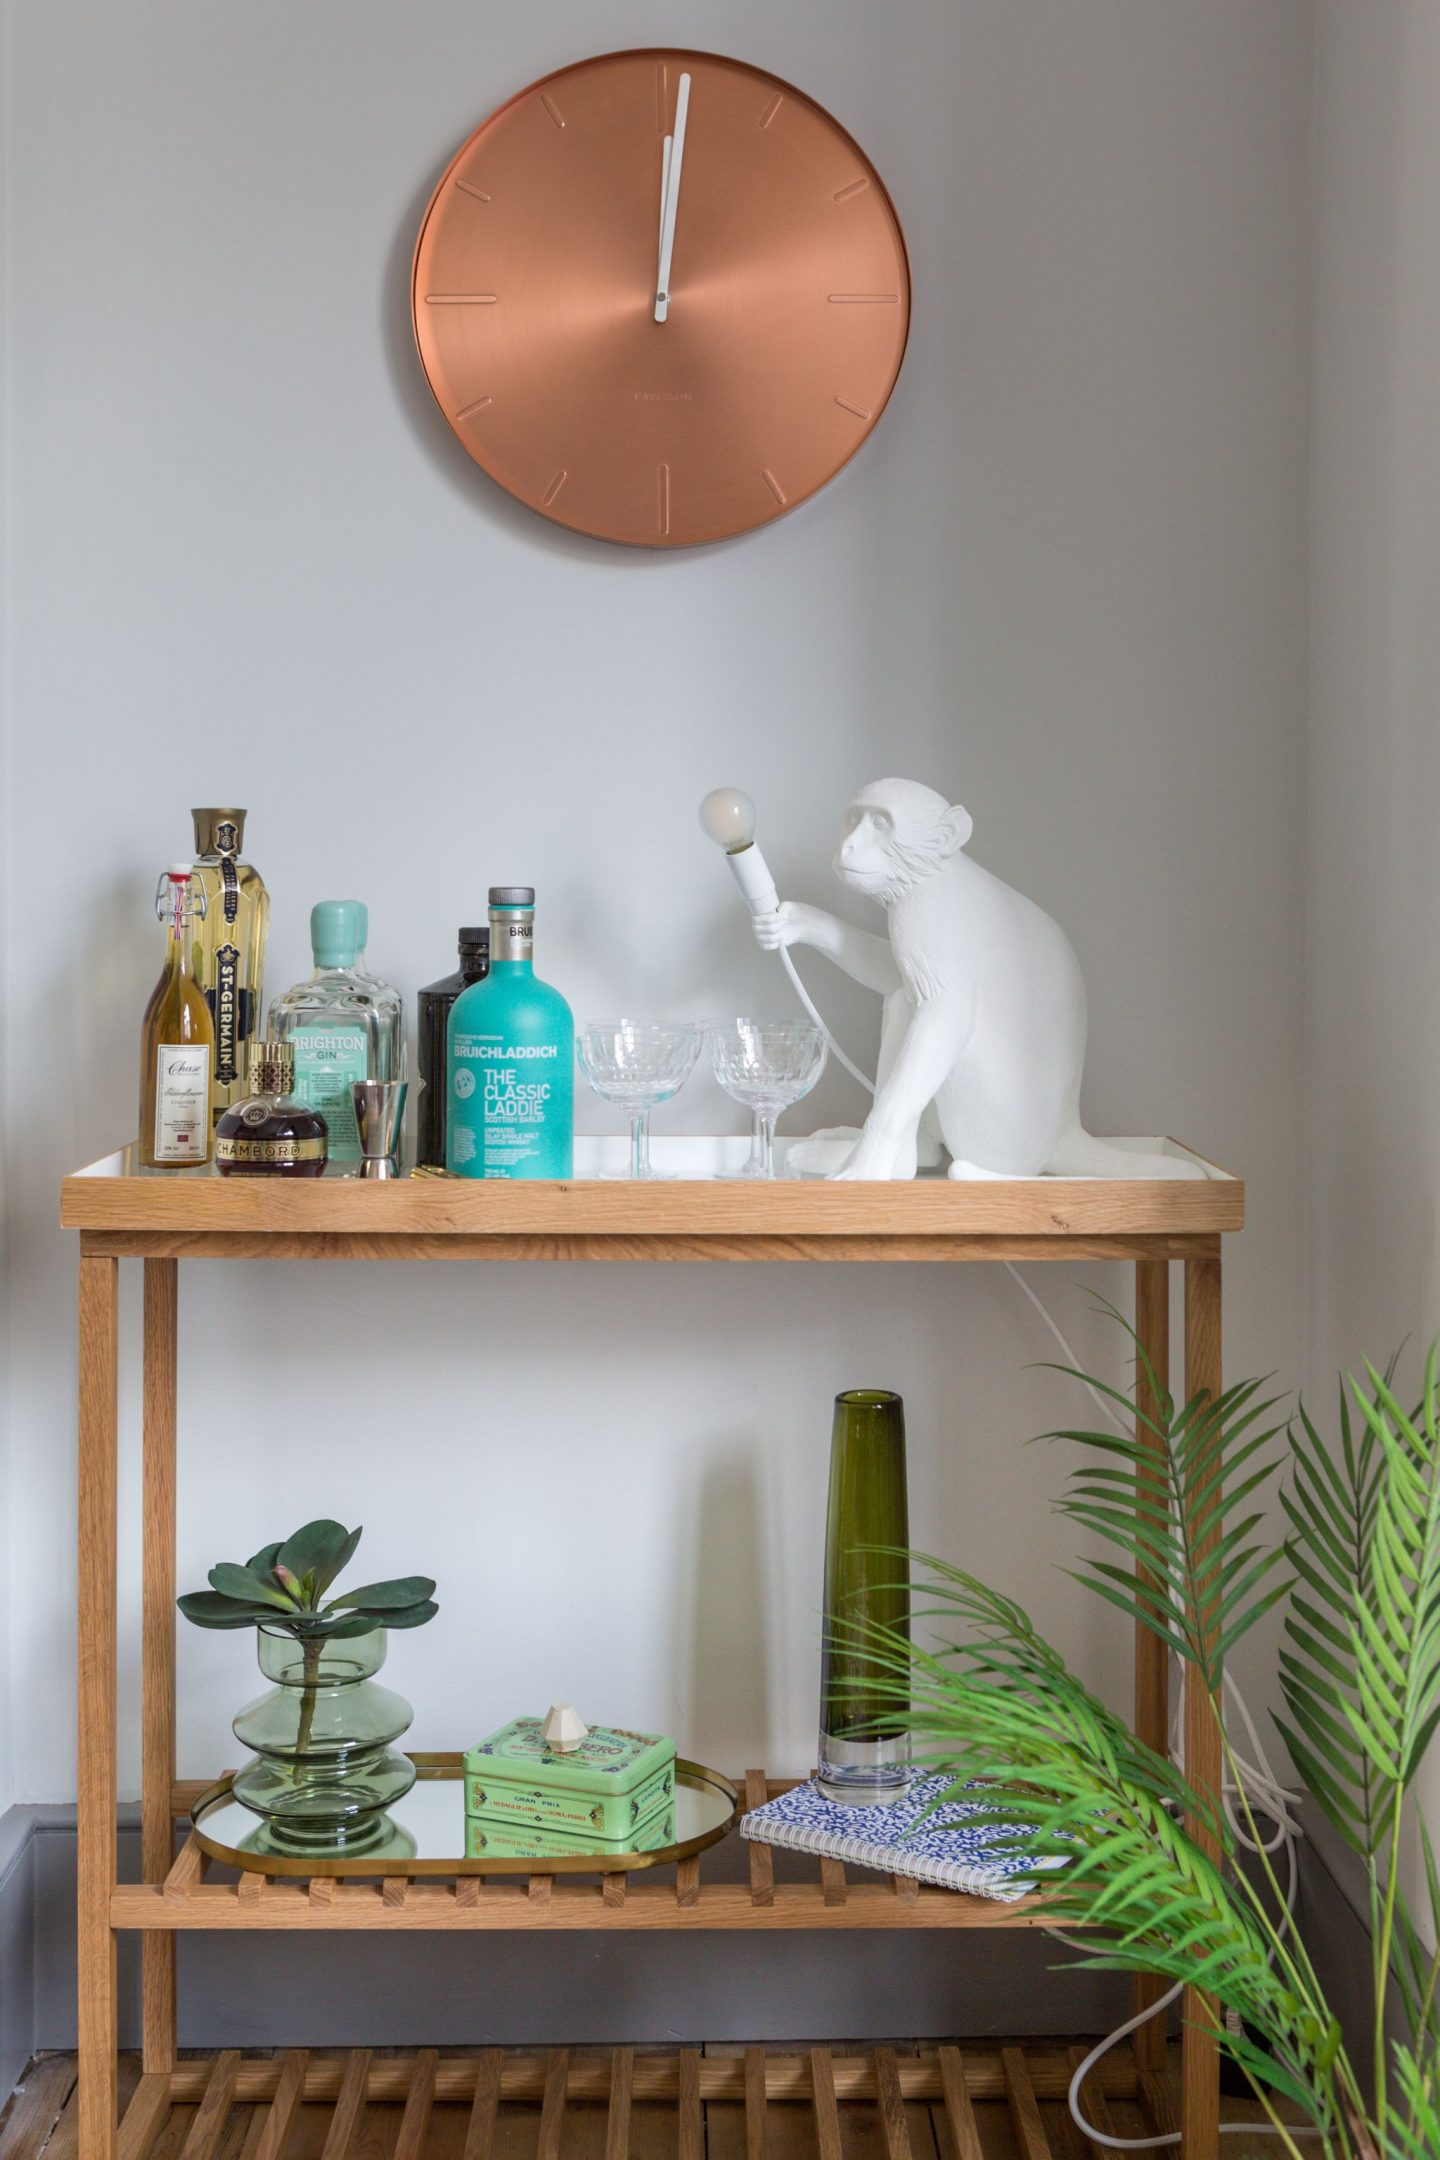 Style a living room, Styling Challenge, Living Room, interiors blog, the House that Bloggers Built, hellopeagreen, decor, blogger challenge, Bar Cart Styling, Rocket St George, Copper clock